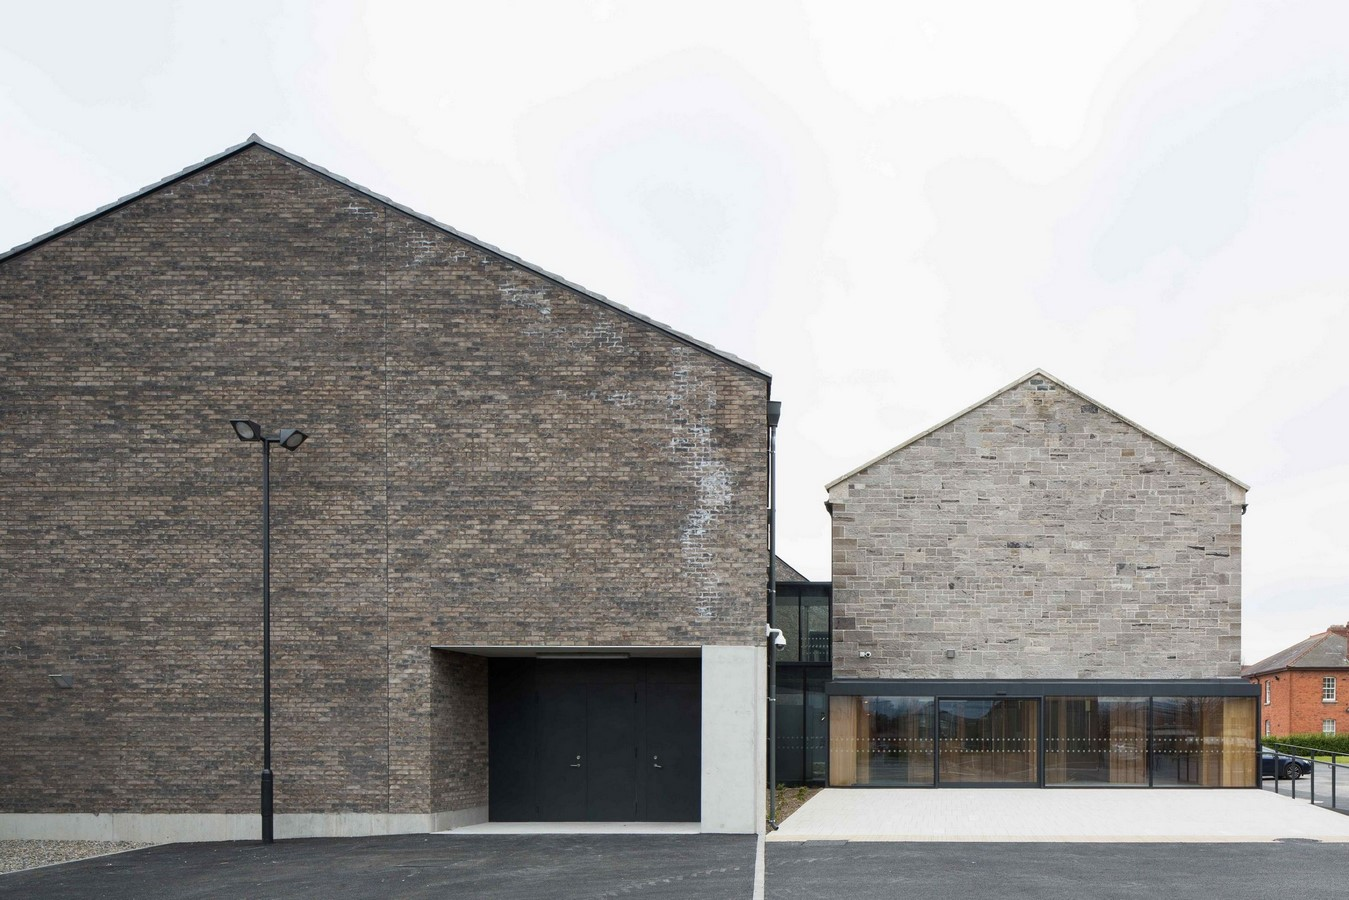 Military Archives and Storage Building, Dublin, Ireland - Sheet2